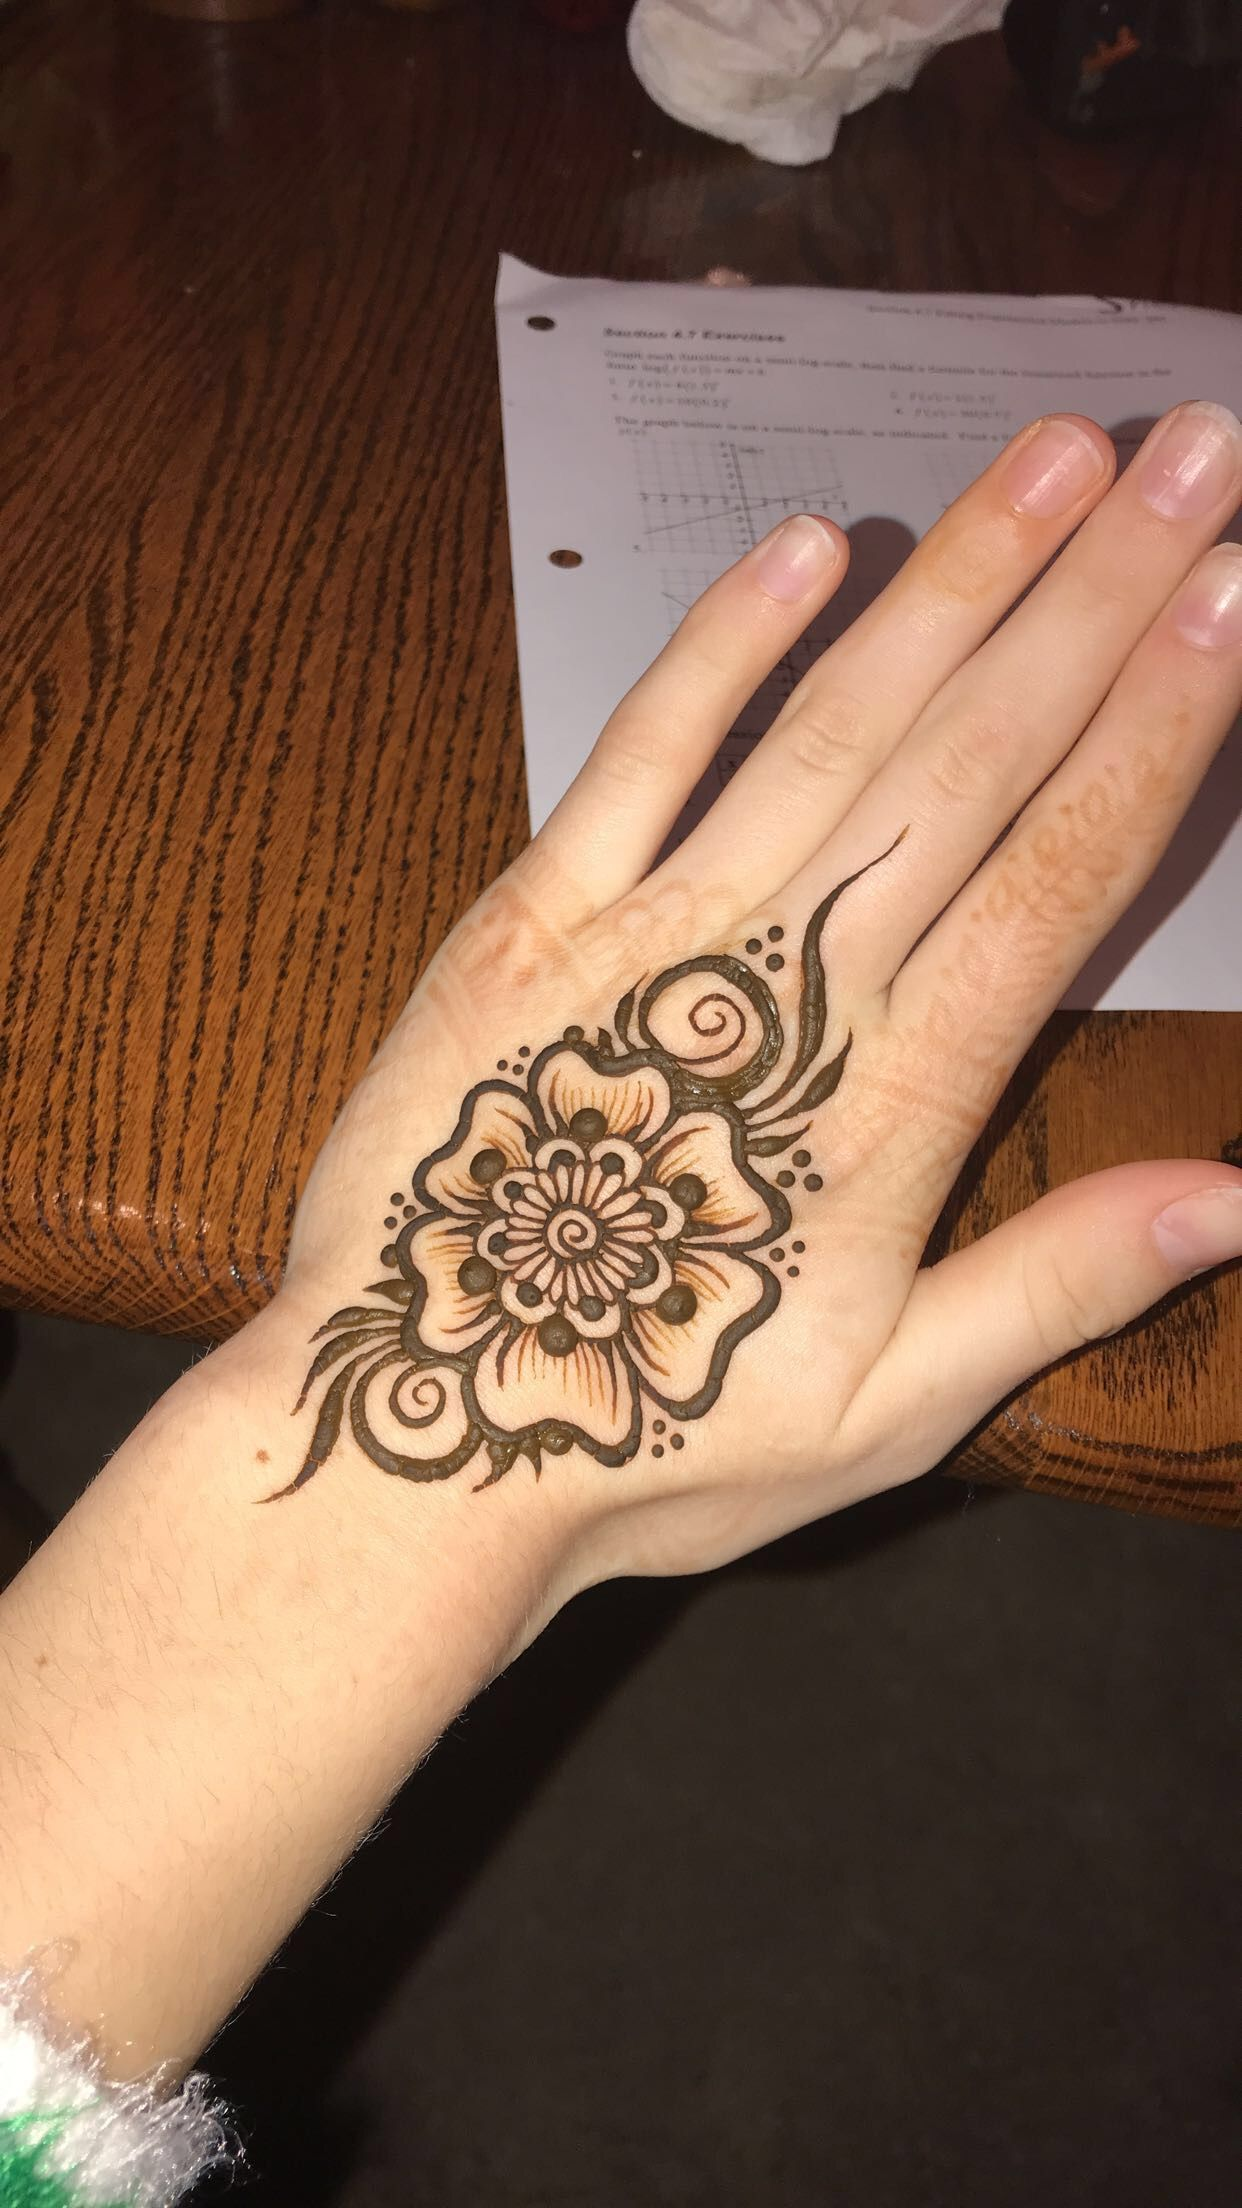 Wrist Henna Tattoo Pinterest Sheridanblasey: Flower Henna! Inspired By @mehndikajoeyhenna On Insta